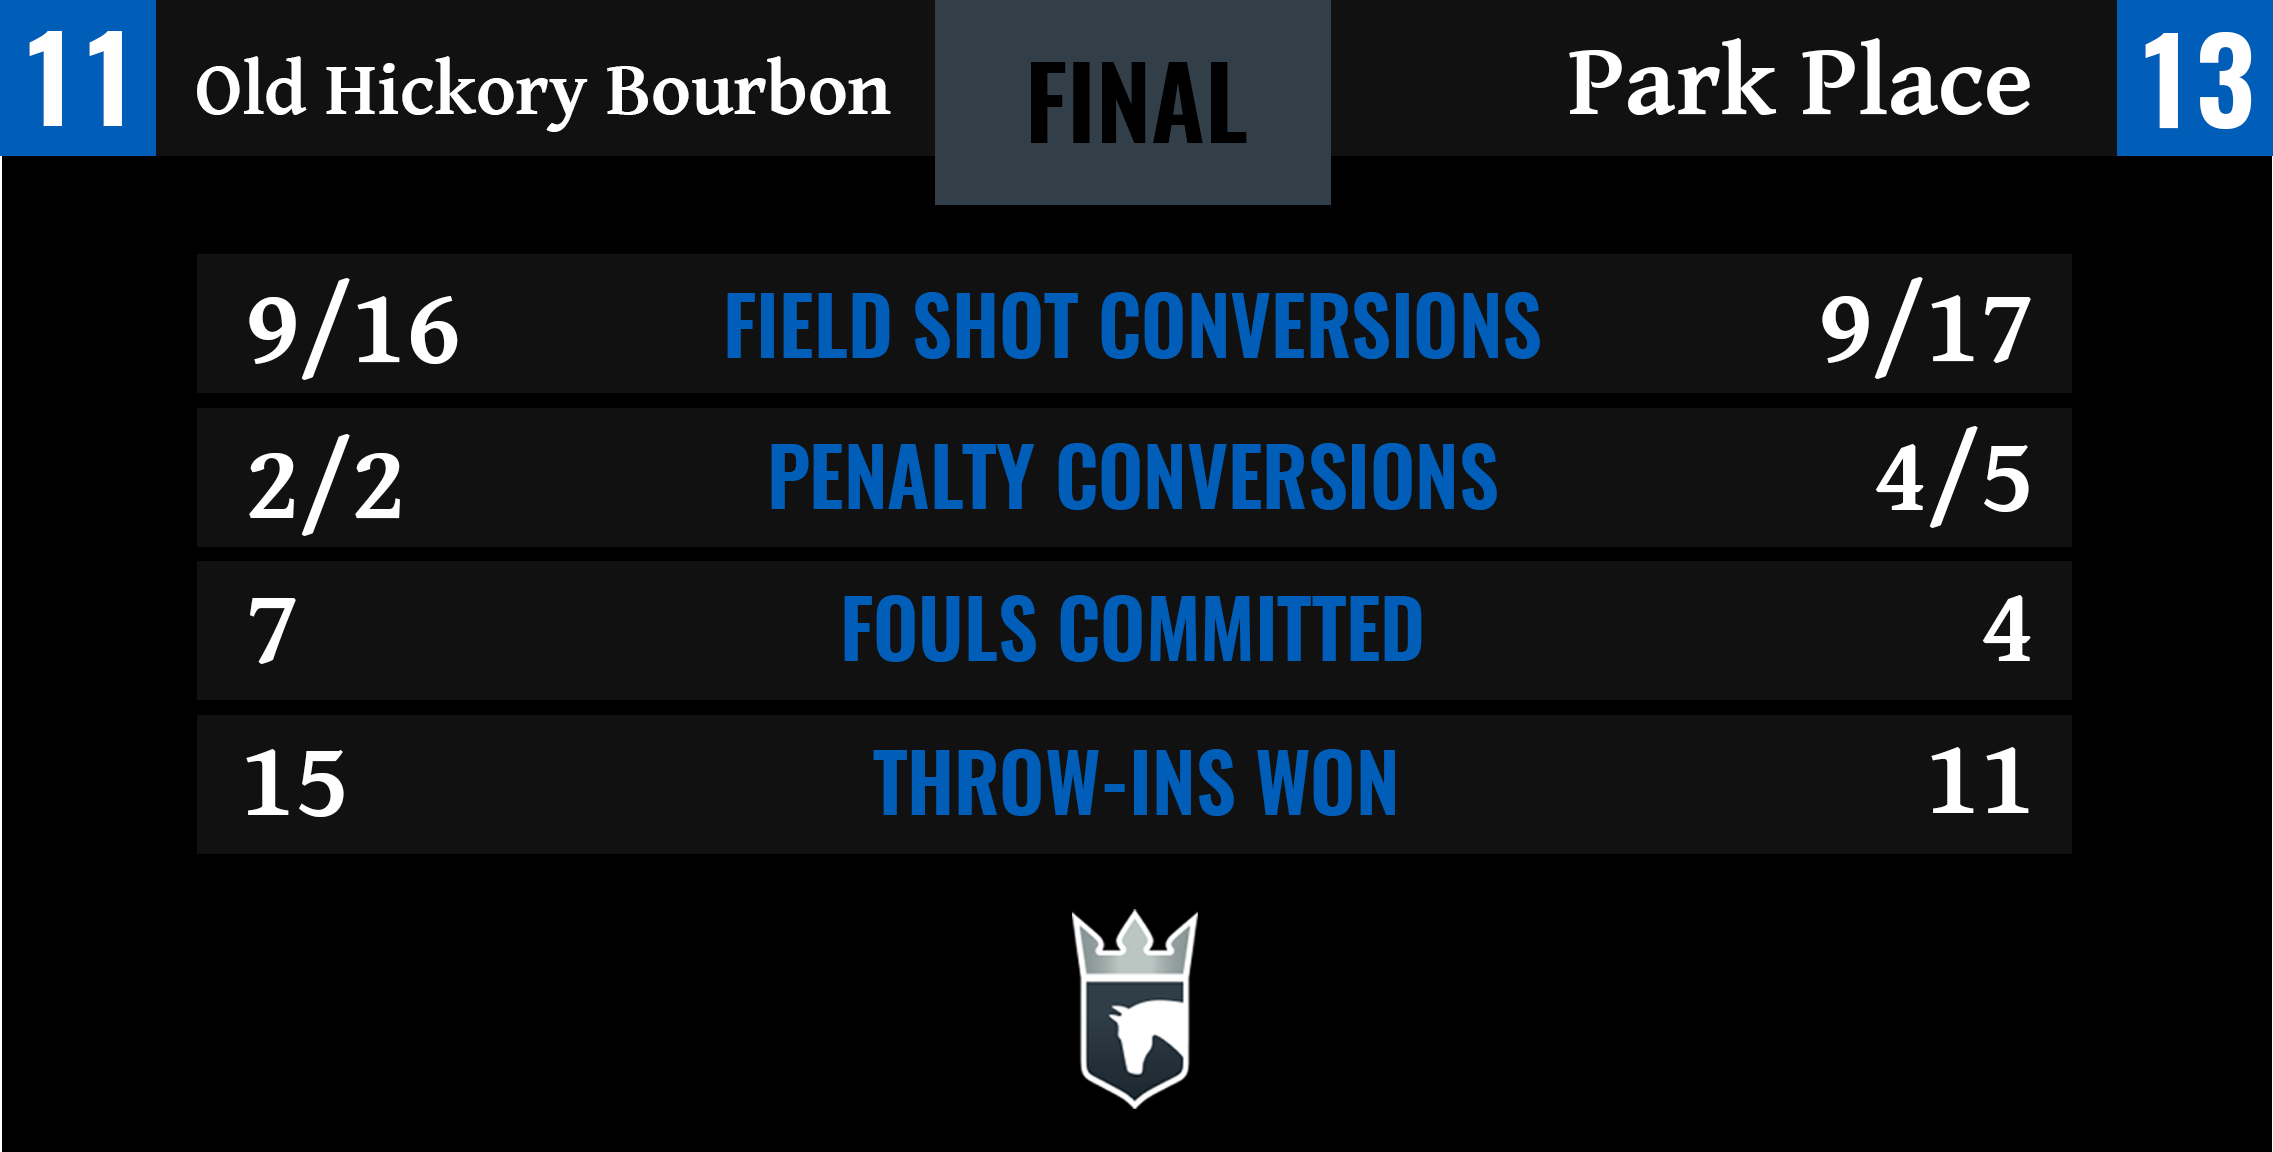 Old Hickory Bourbon vs Park Place Final Stats